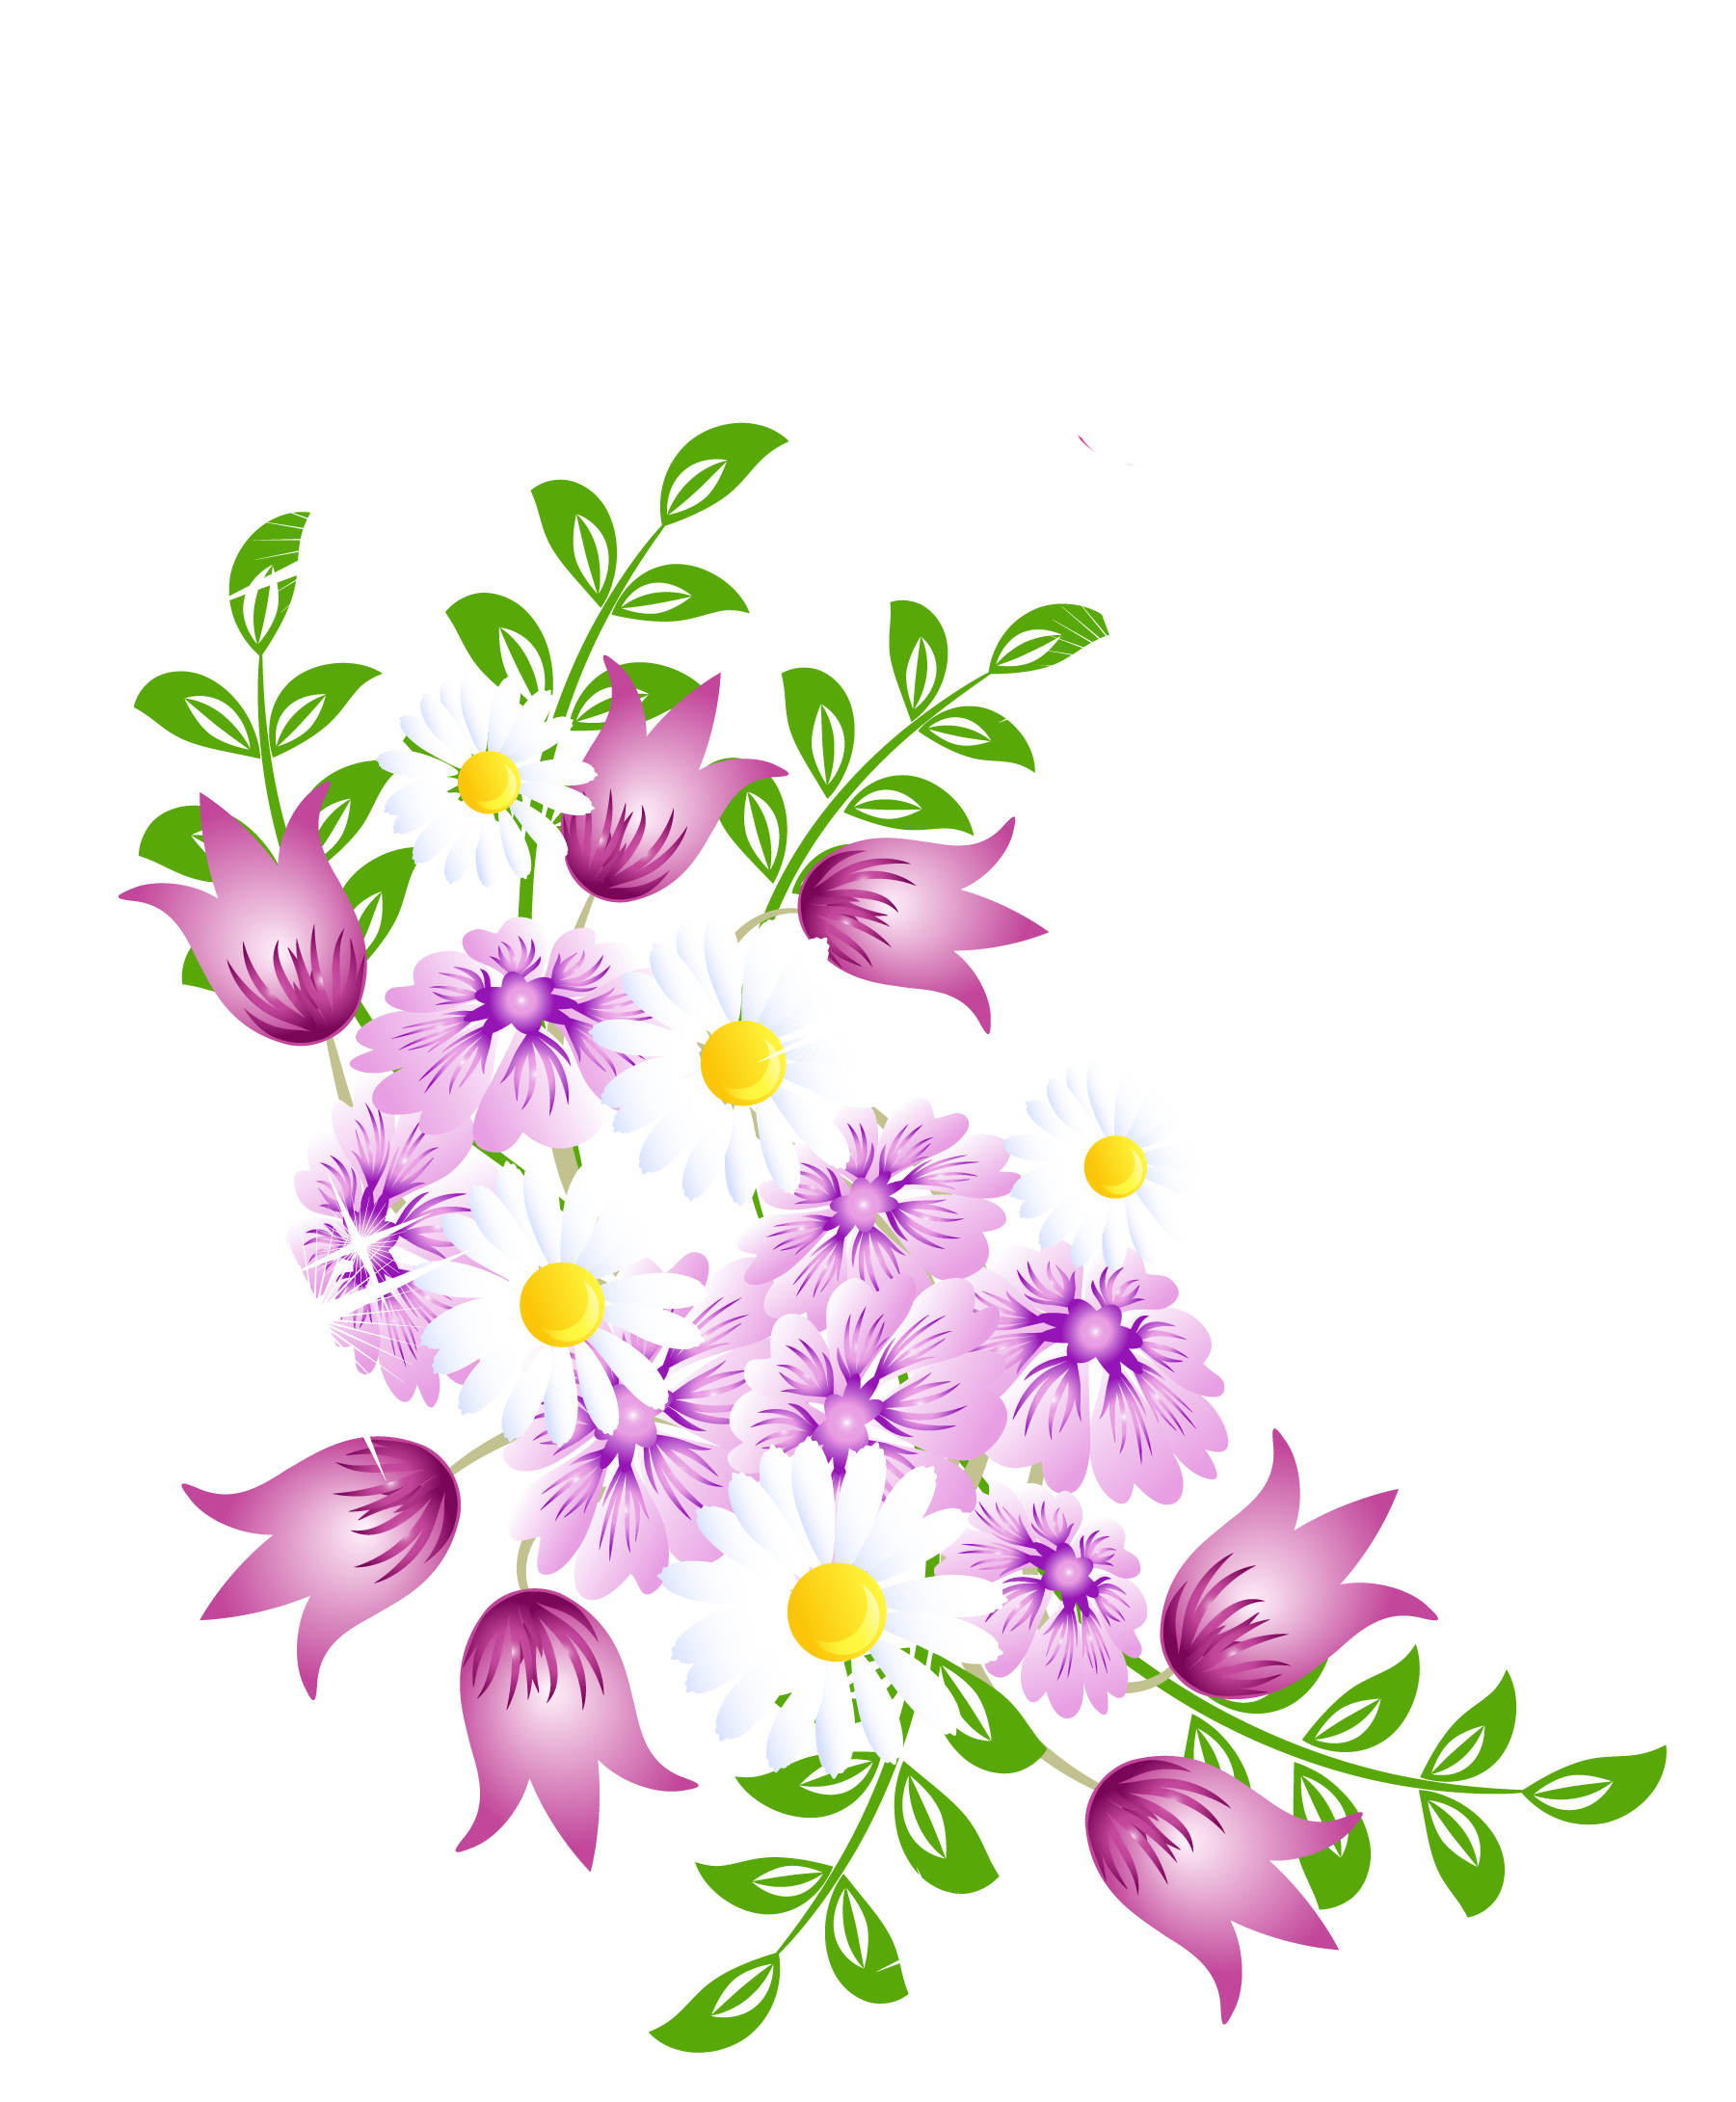 clipart download Wheelbarrow clipart spring flower. Flowers decor png picture